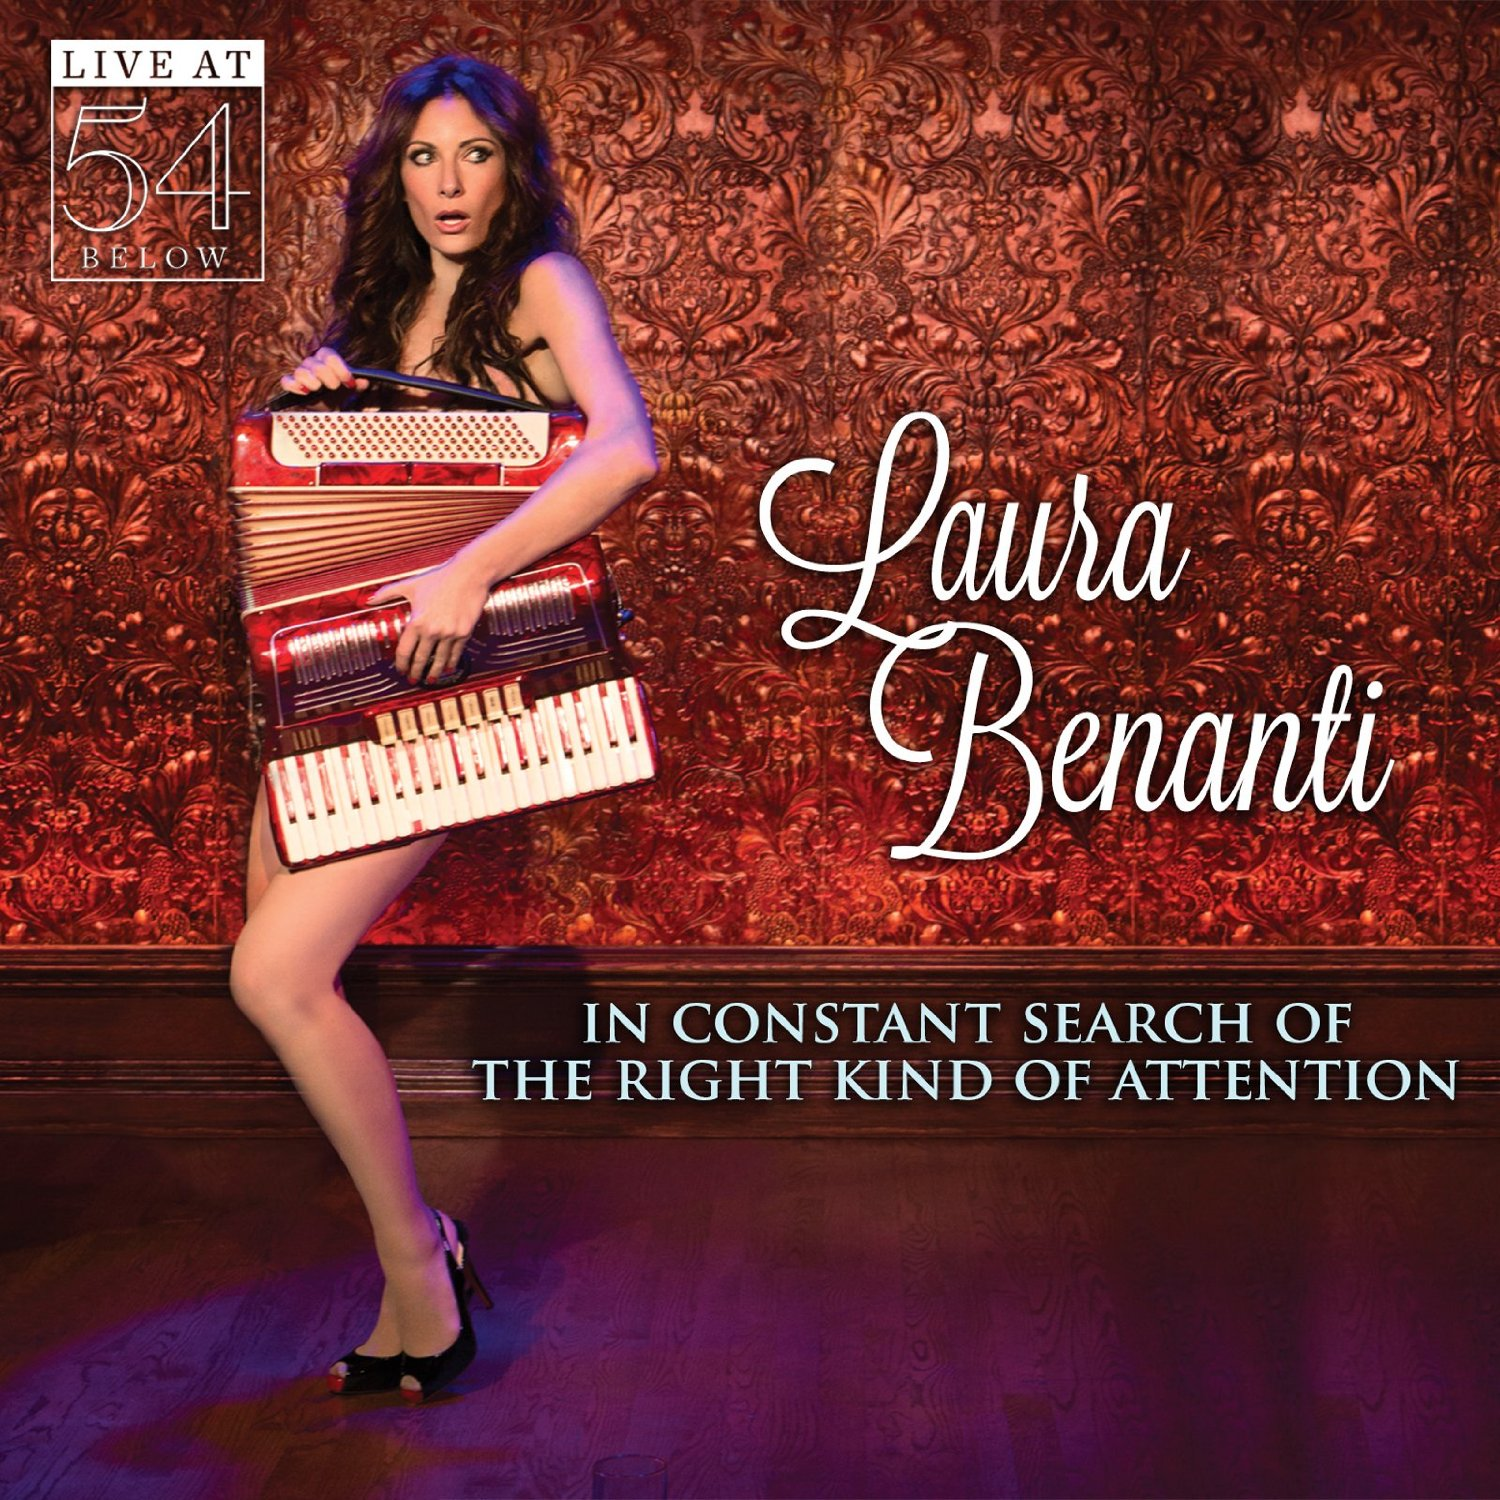 Laura Benanti: 'In Constant Search of the Right Kind of Attention'